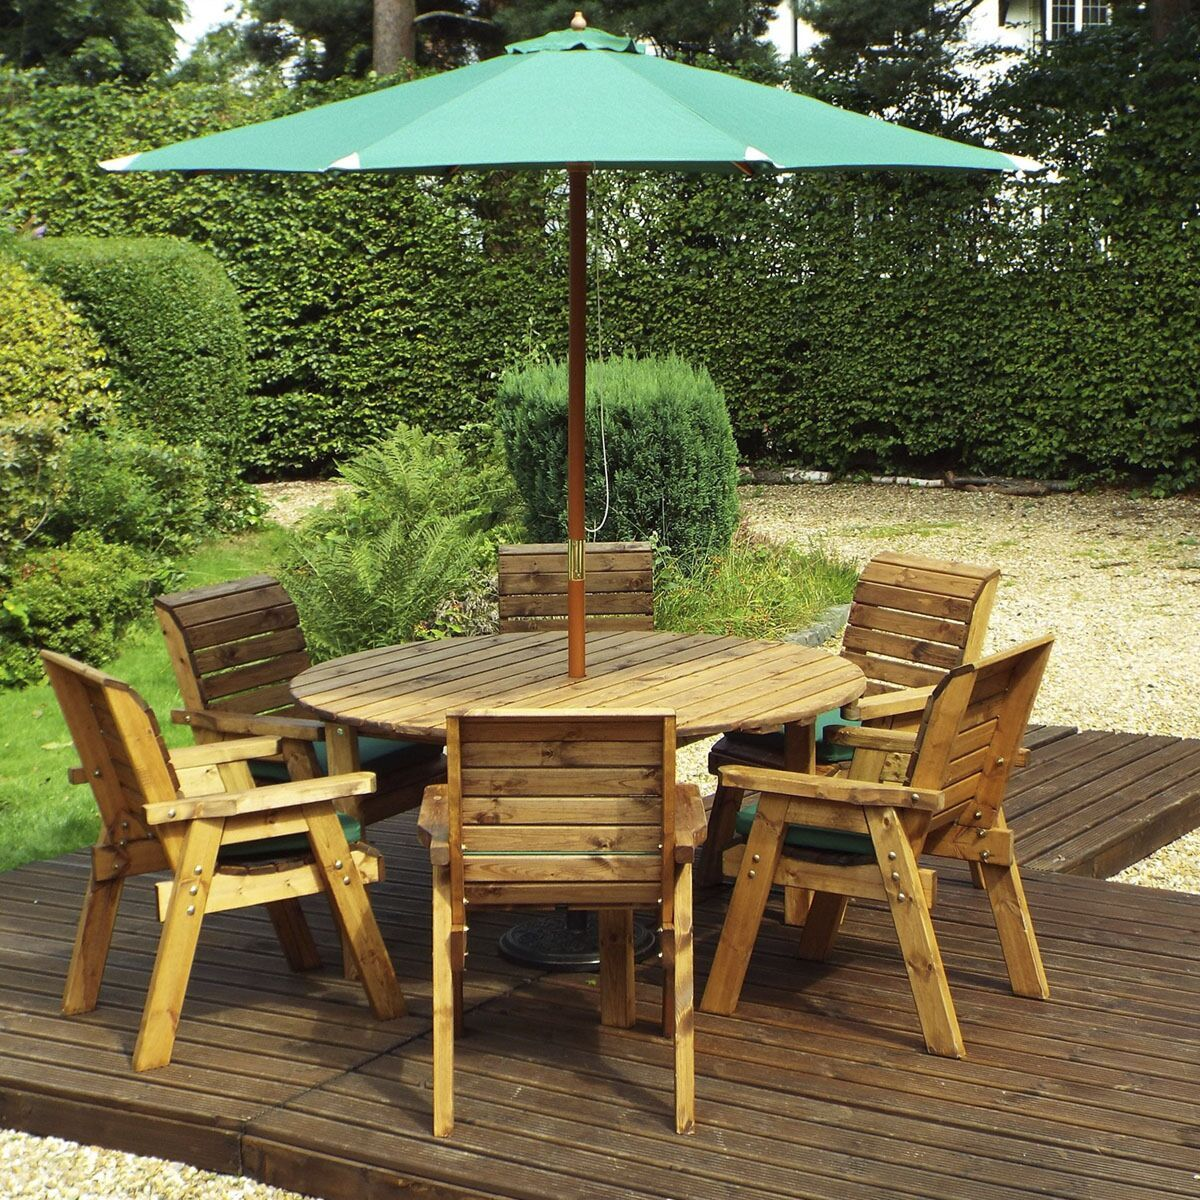 Charles Taylor 6 Seater Round Table Set With Cushions Storage Bag Parasol And Base In 2020 Outdoor Dining Set